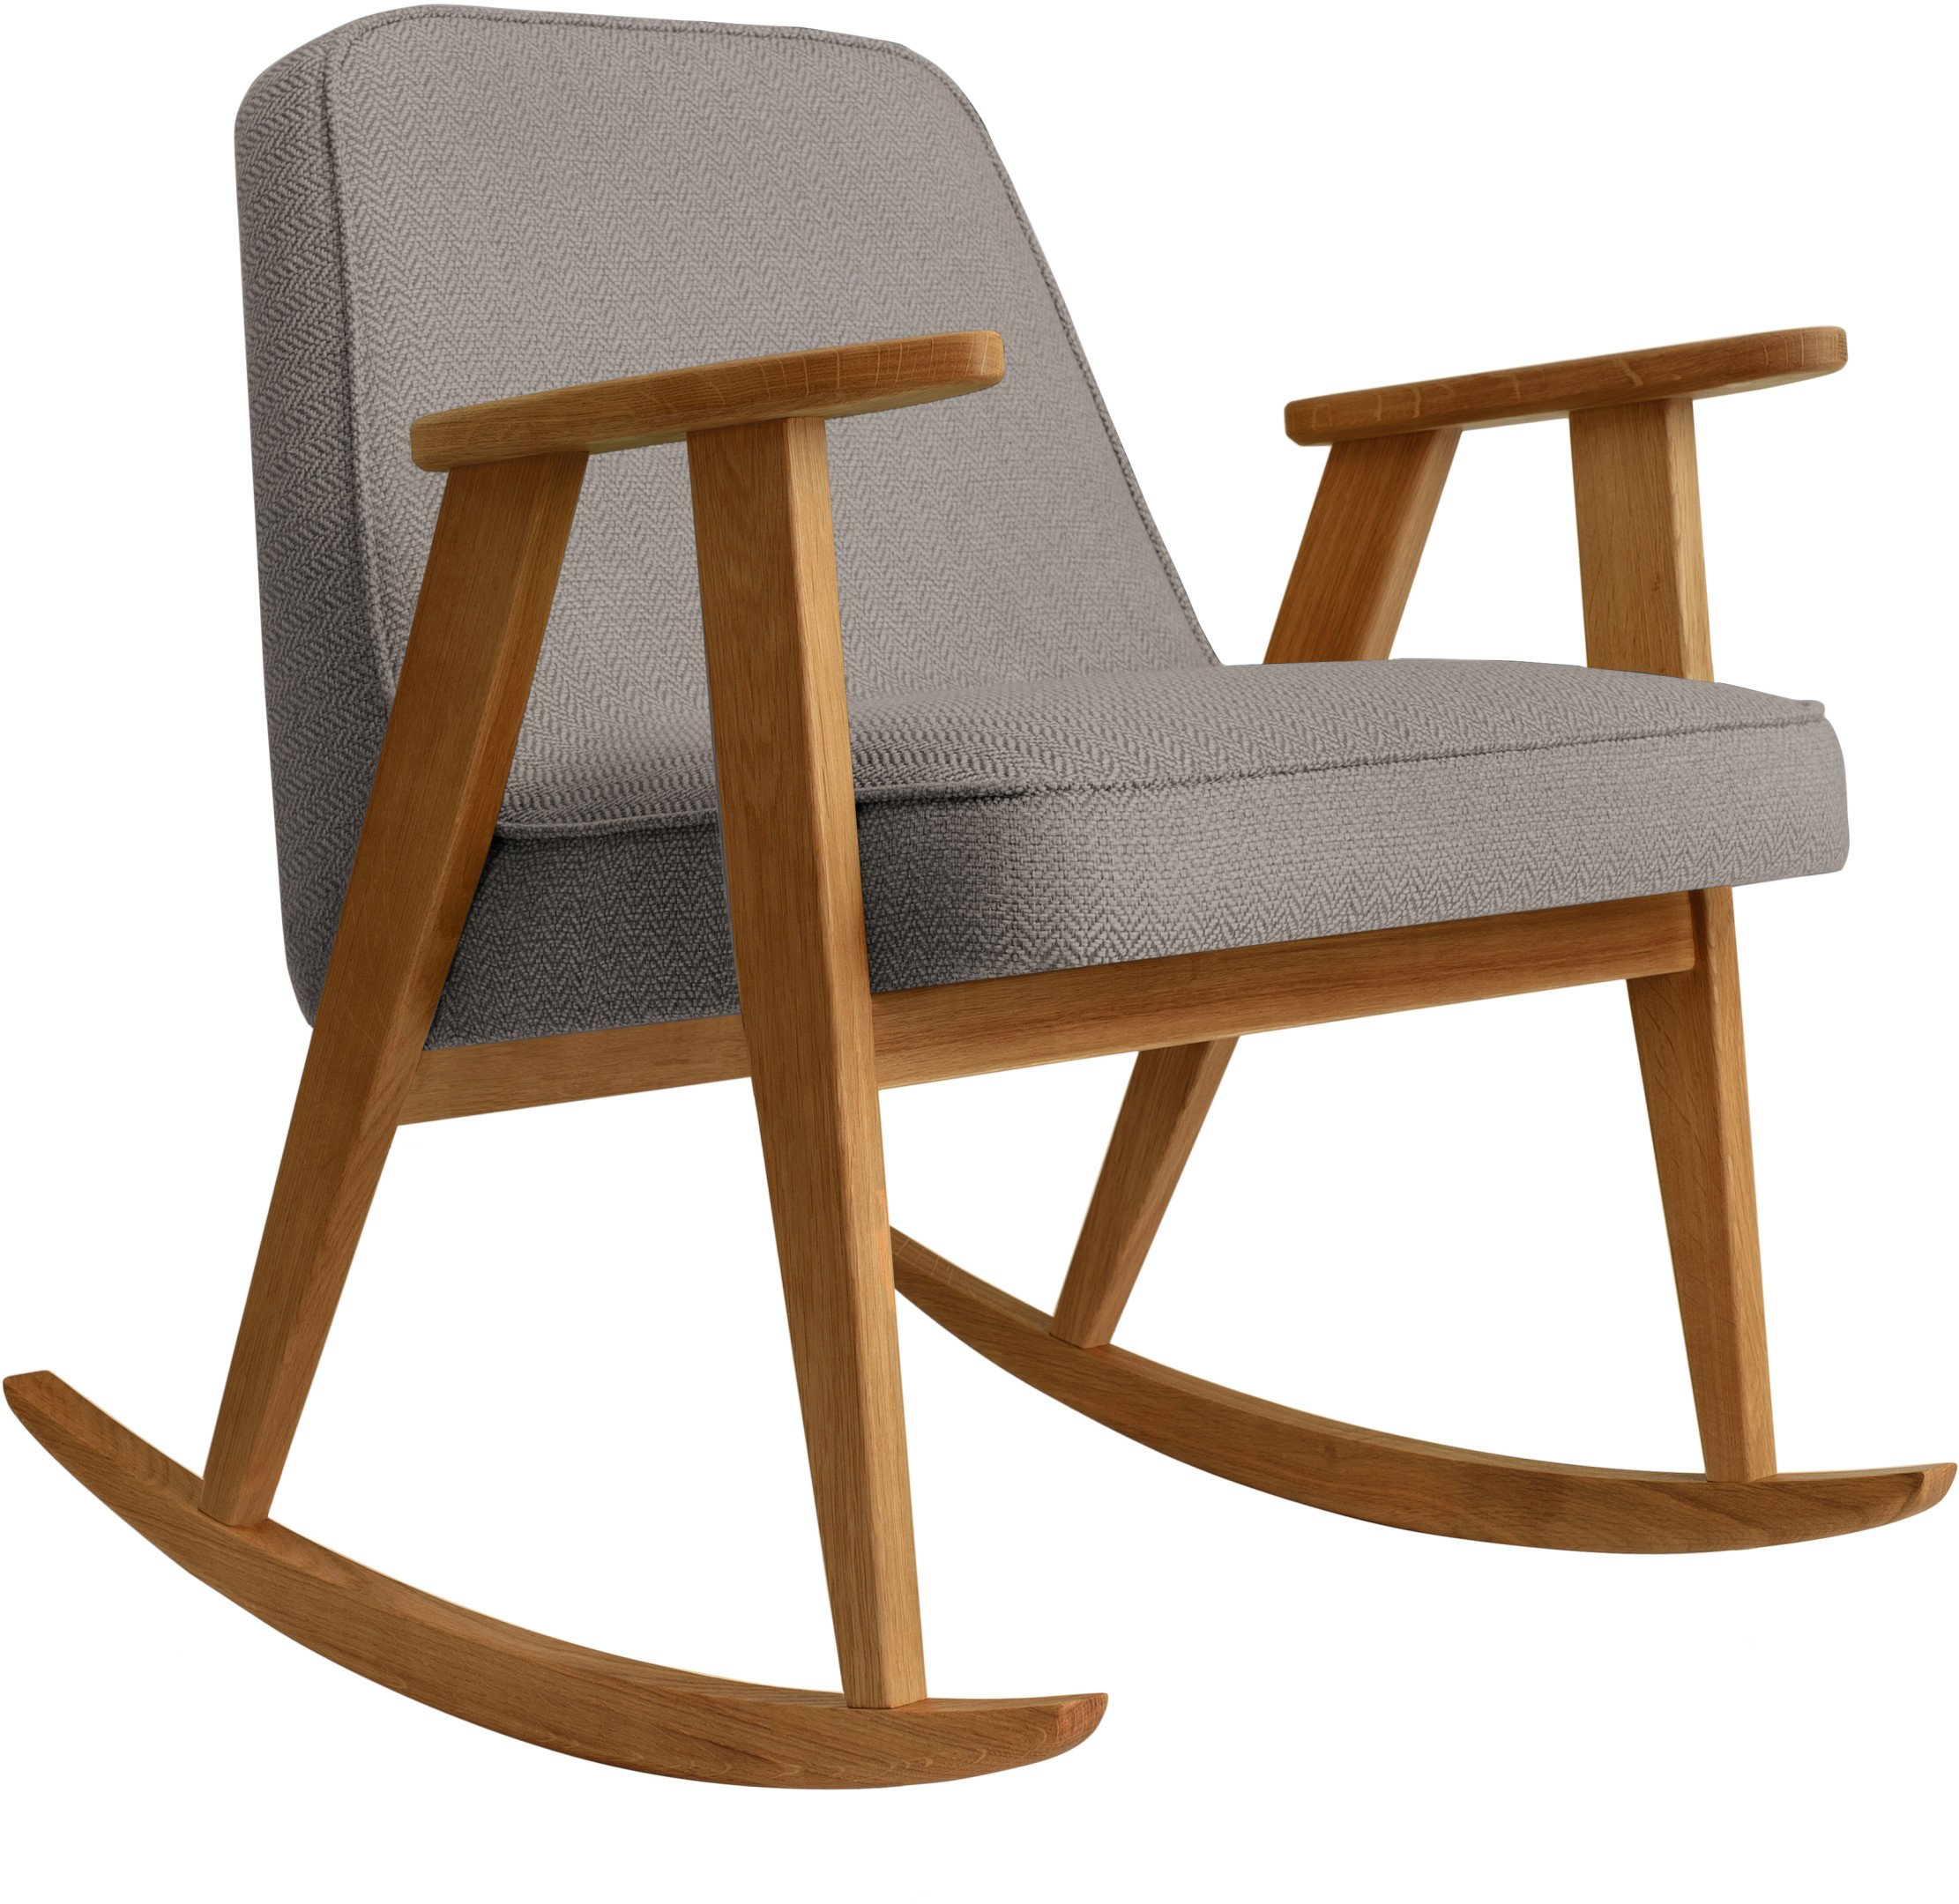 366 Rocking Chair Tweed Stone (dark oak) by Józef Chierowski